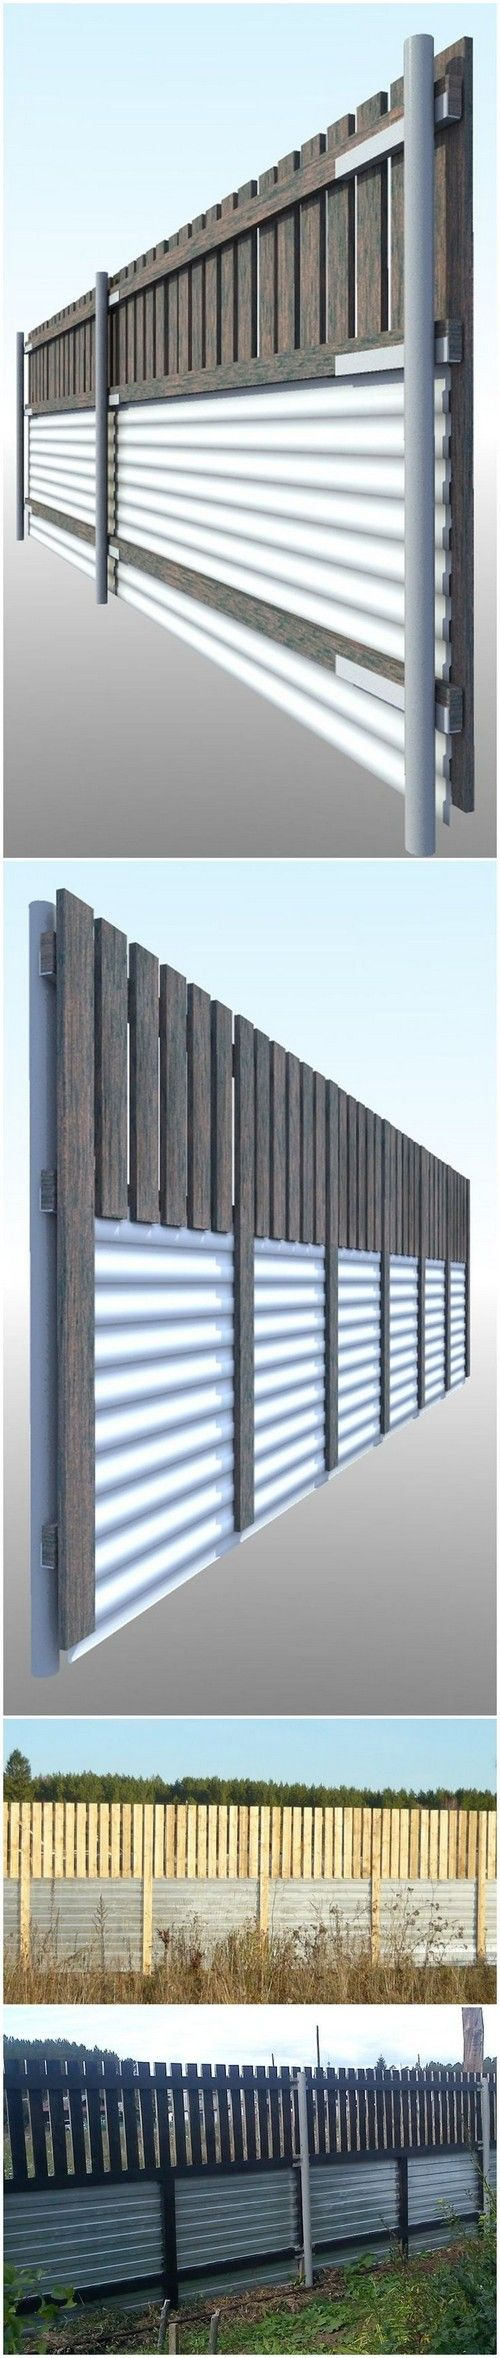 10+ Interesting Ideas of Corrugated Metal Fence DIY in ...